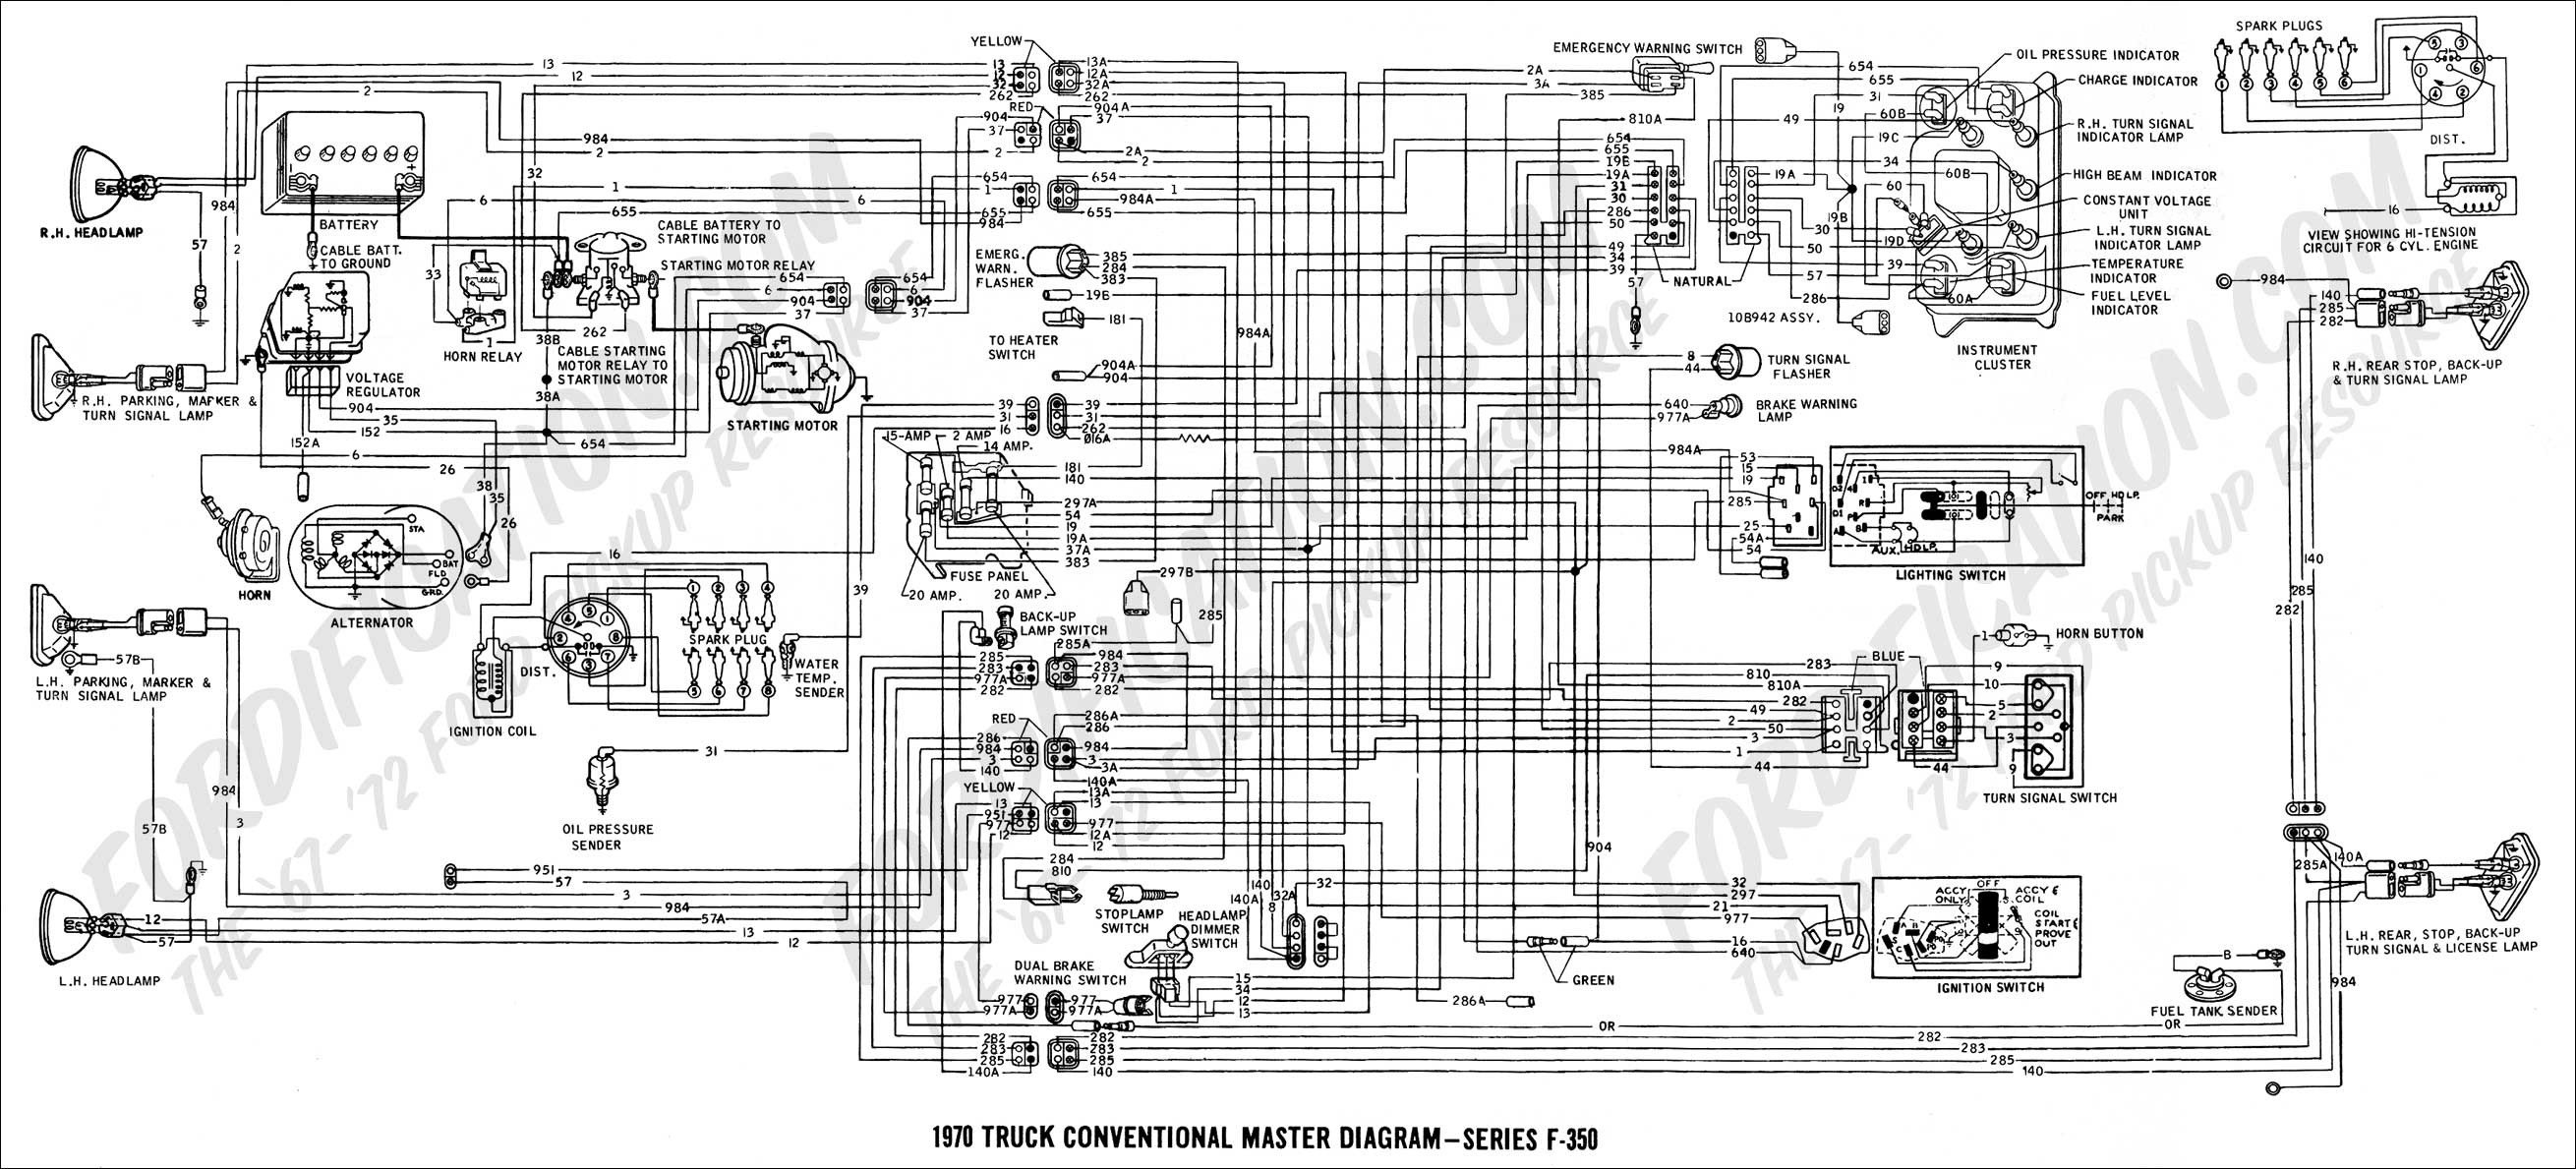 Ford F150 4 6 Engine Diagram ford F350 Wiring Diagram About Wiring •  Gatbook Of Ford